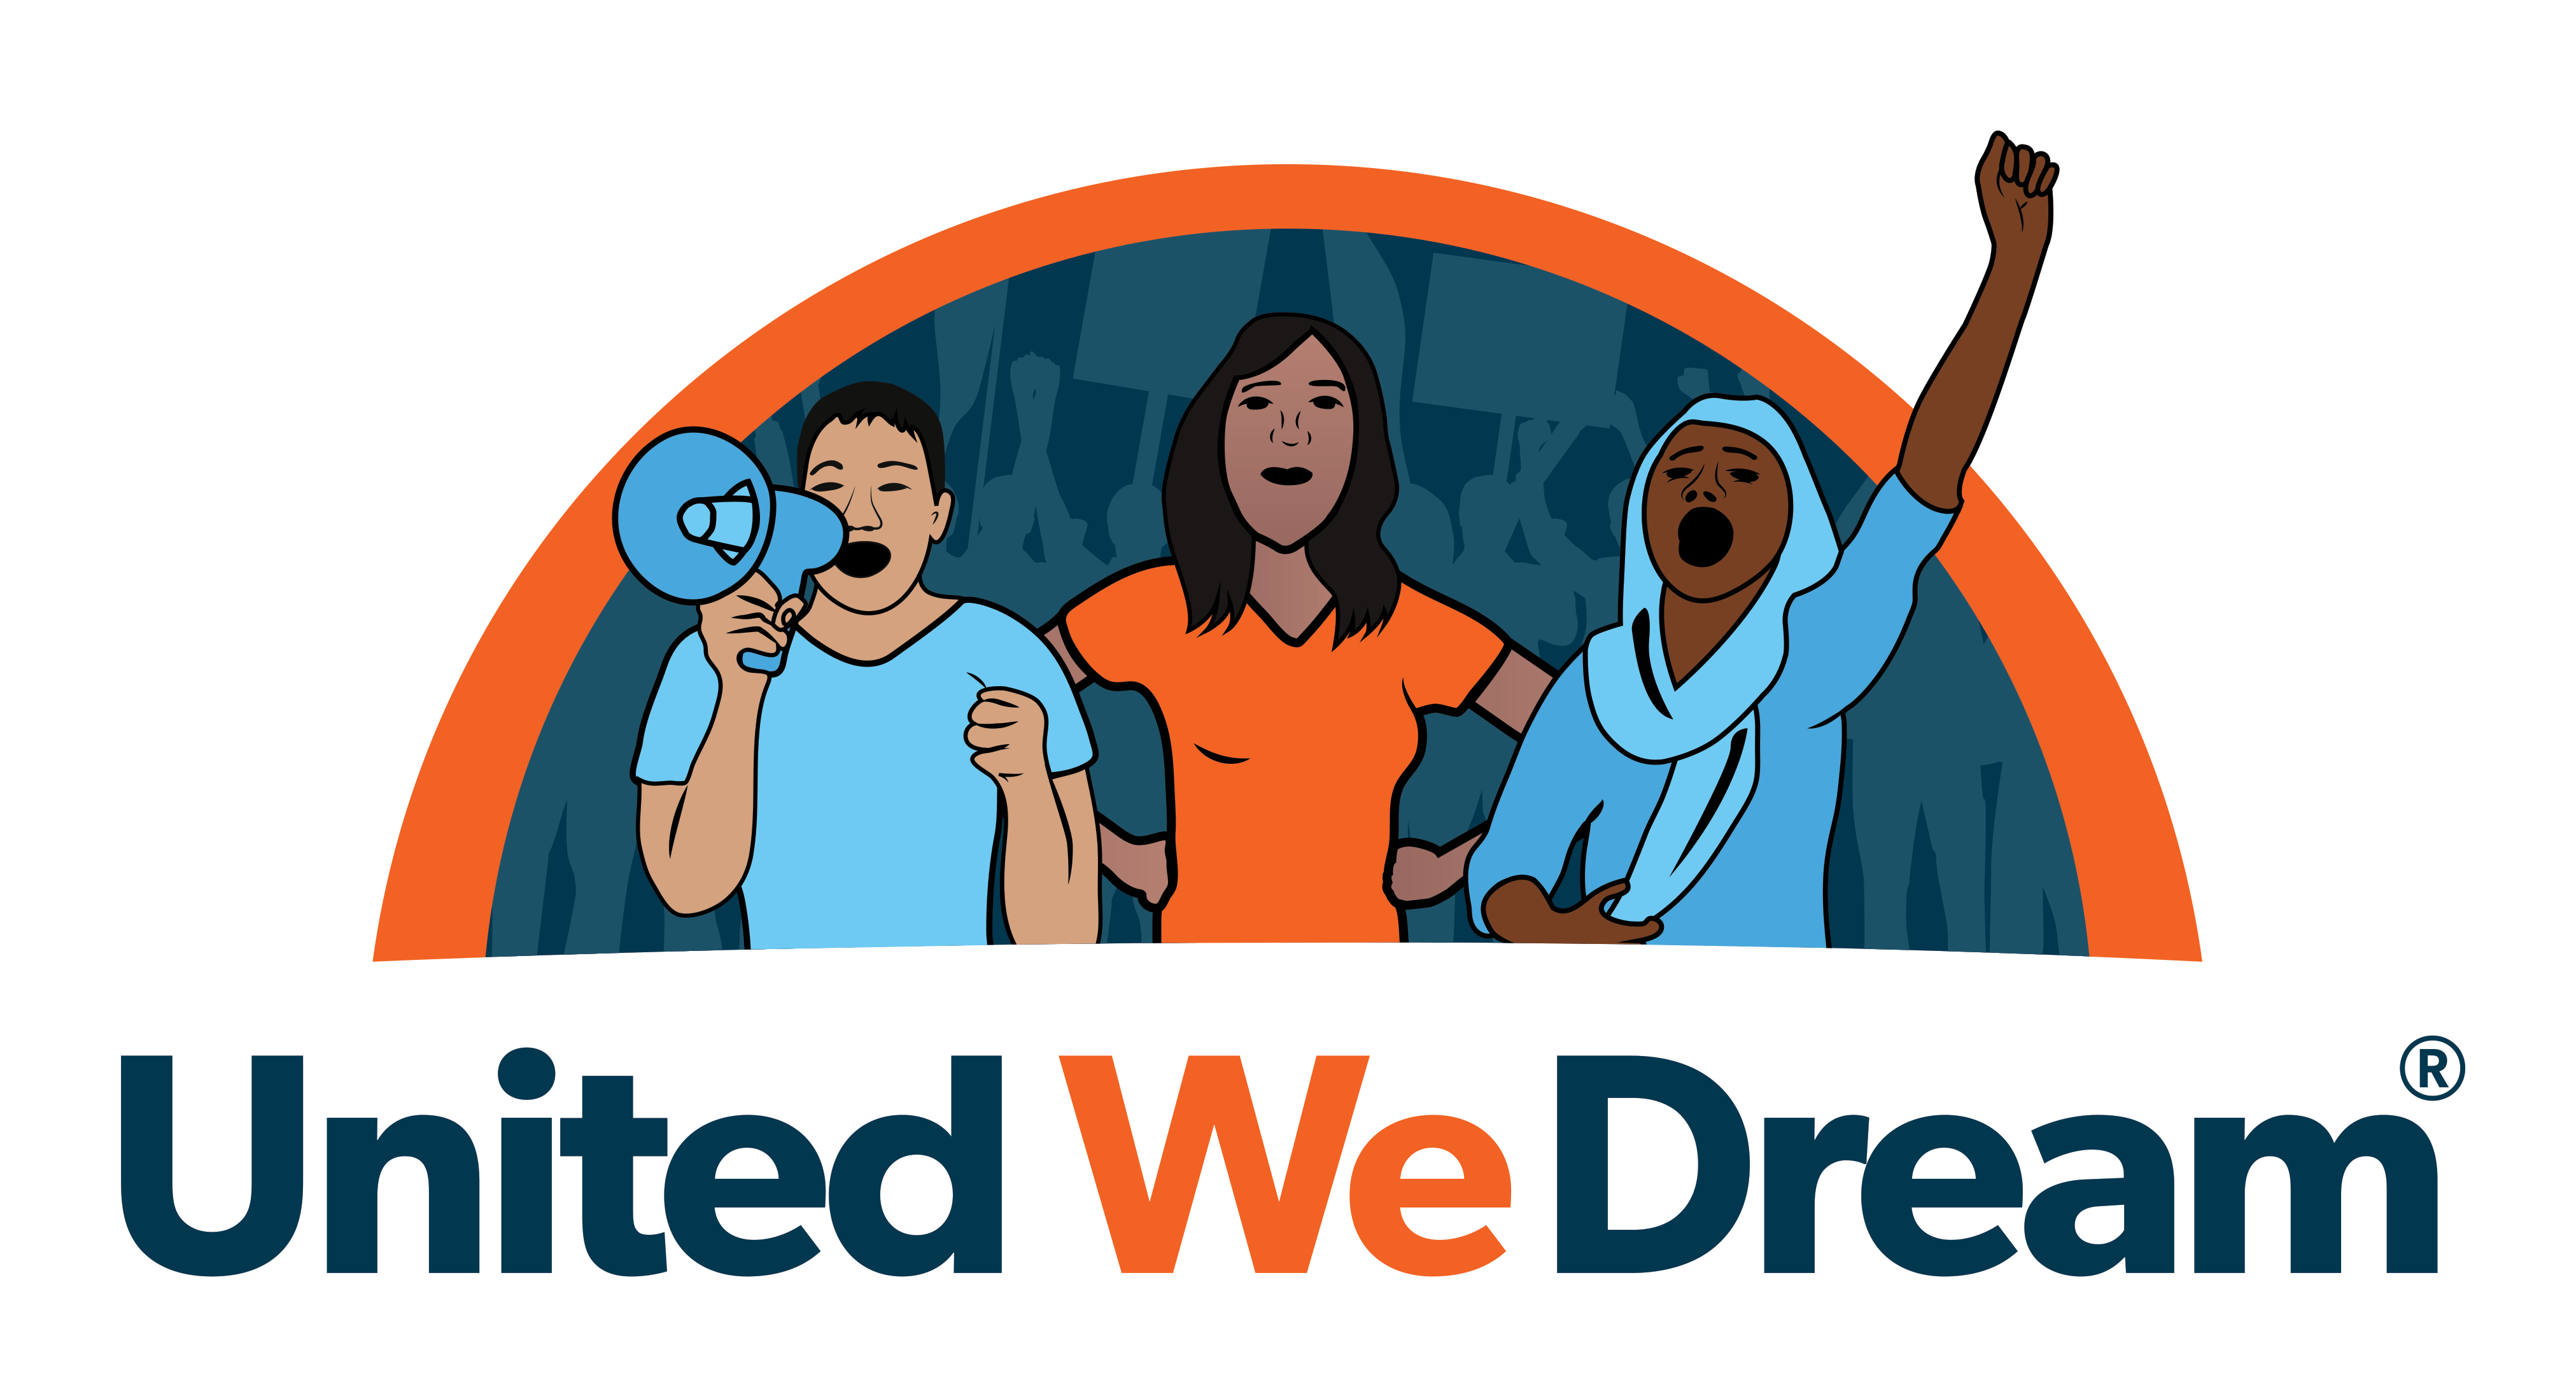 Government giving money to illegals clipart picture freeuse United We Dream | The Largest Immigrant Youth-Led Network picture freeuse